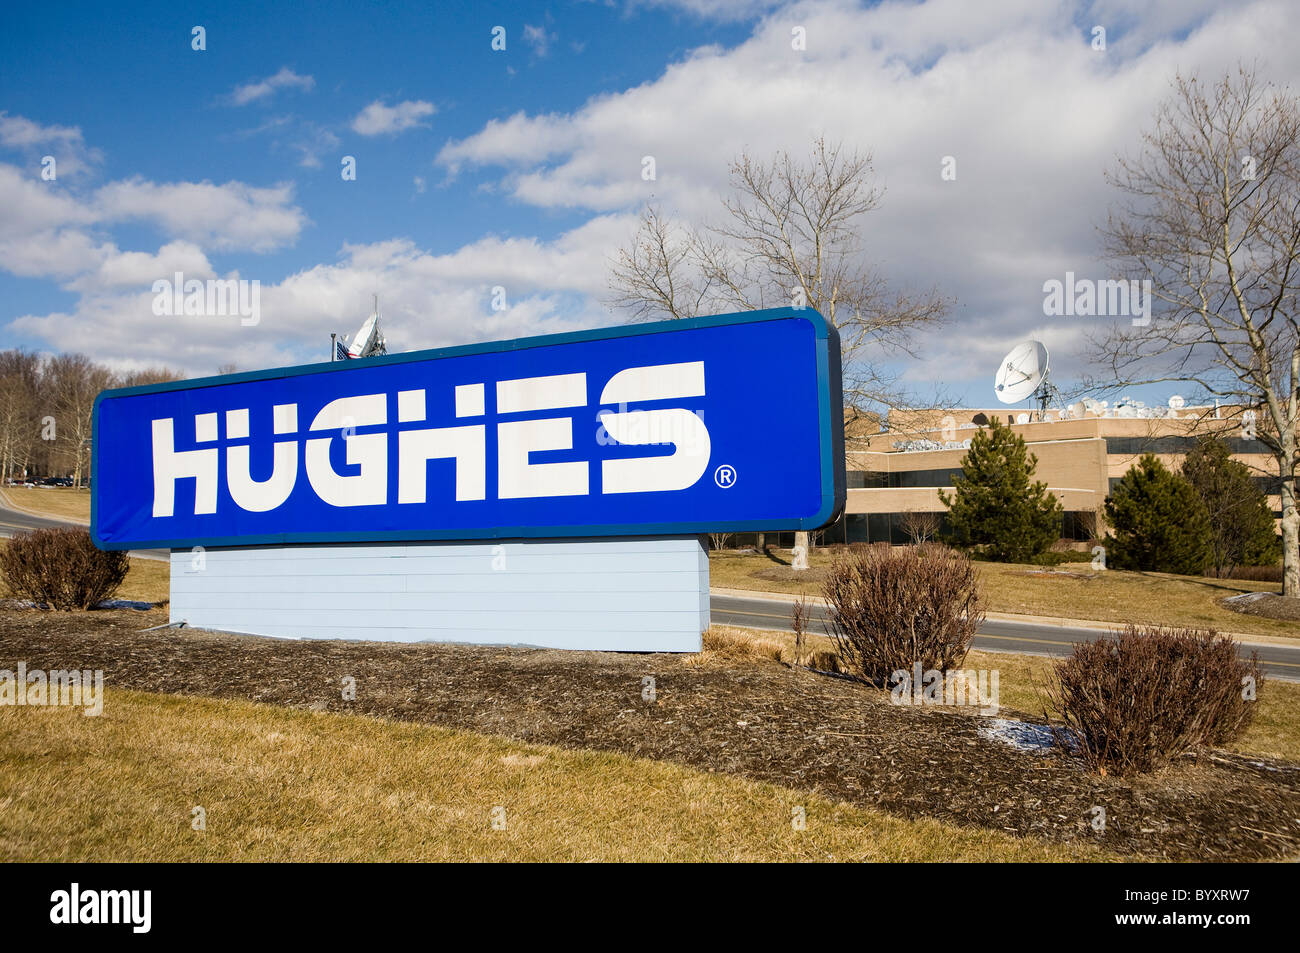 Hughes Network Systems corporate headquarters.  - Stock Image